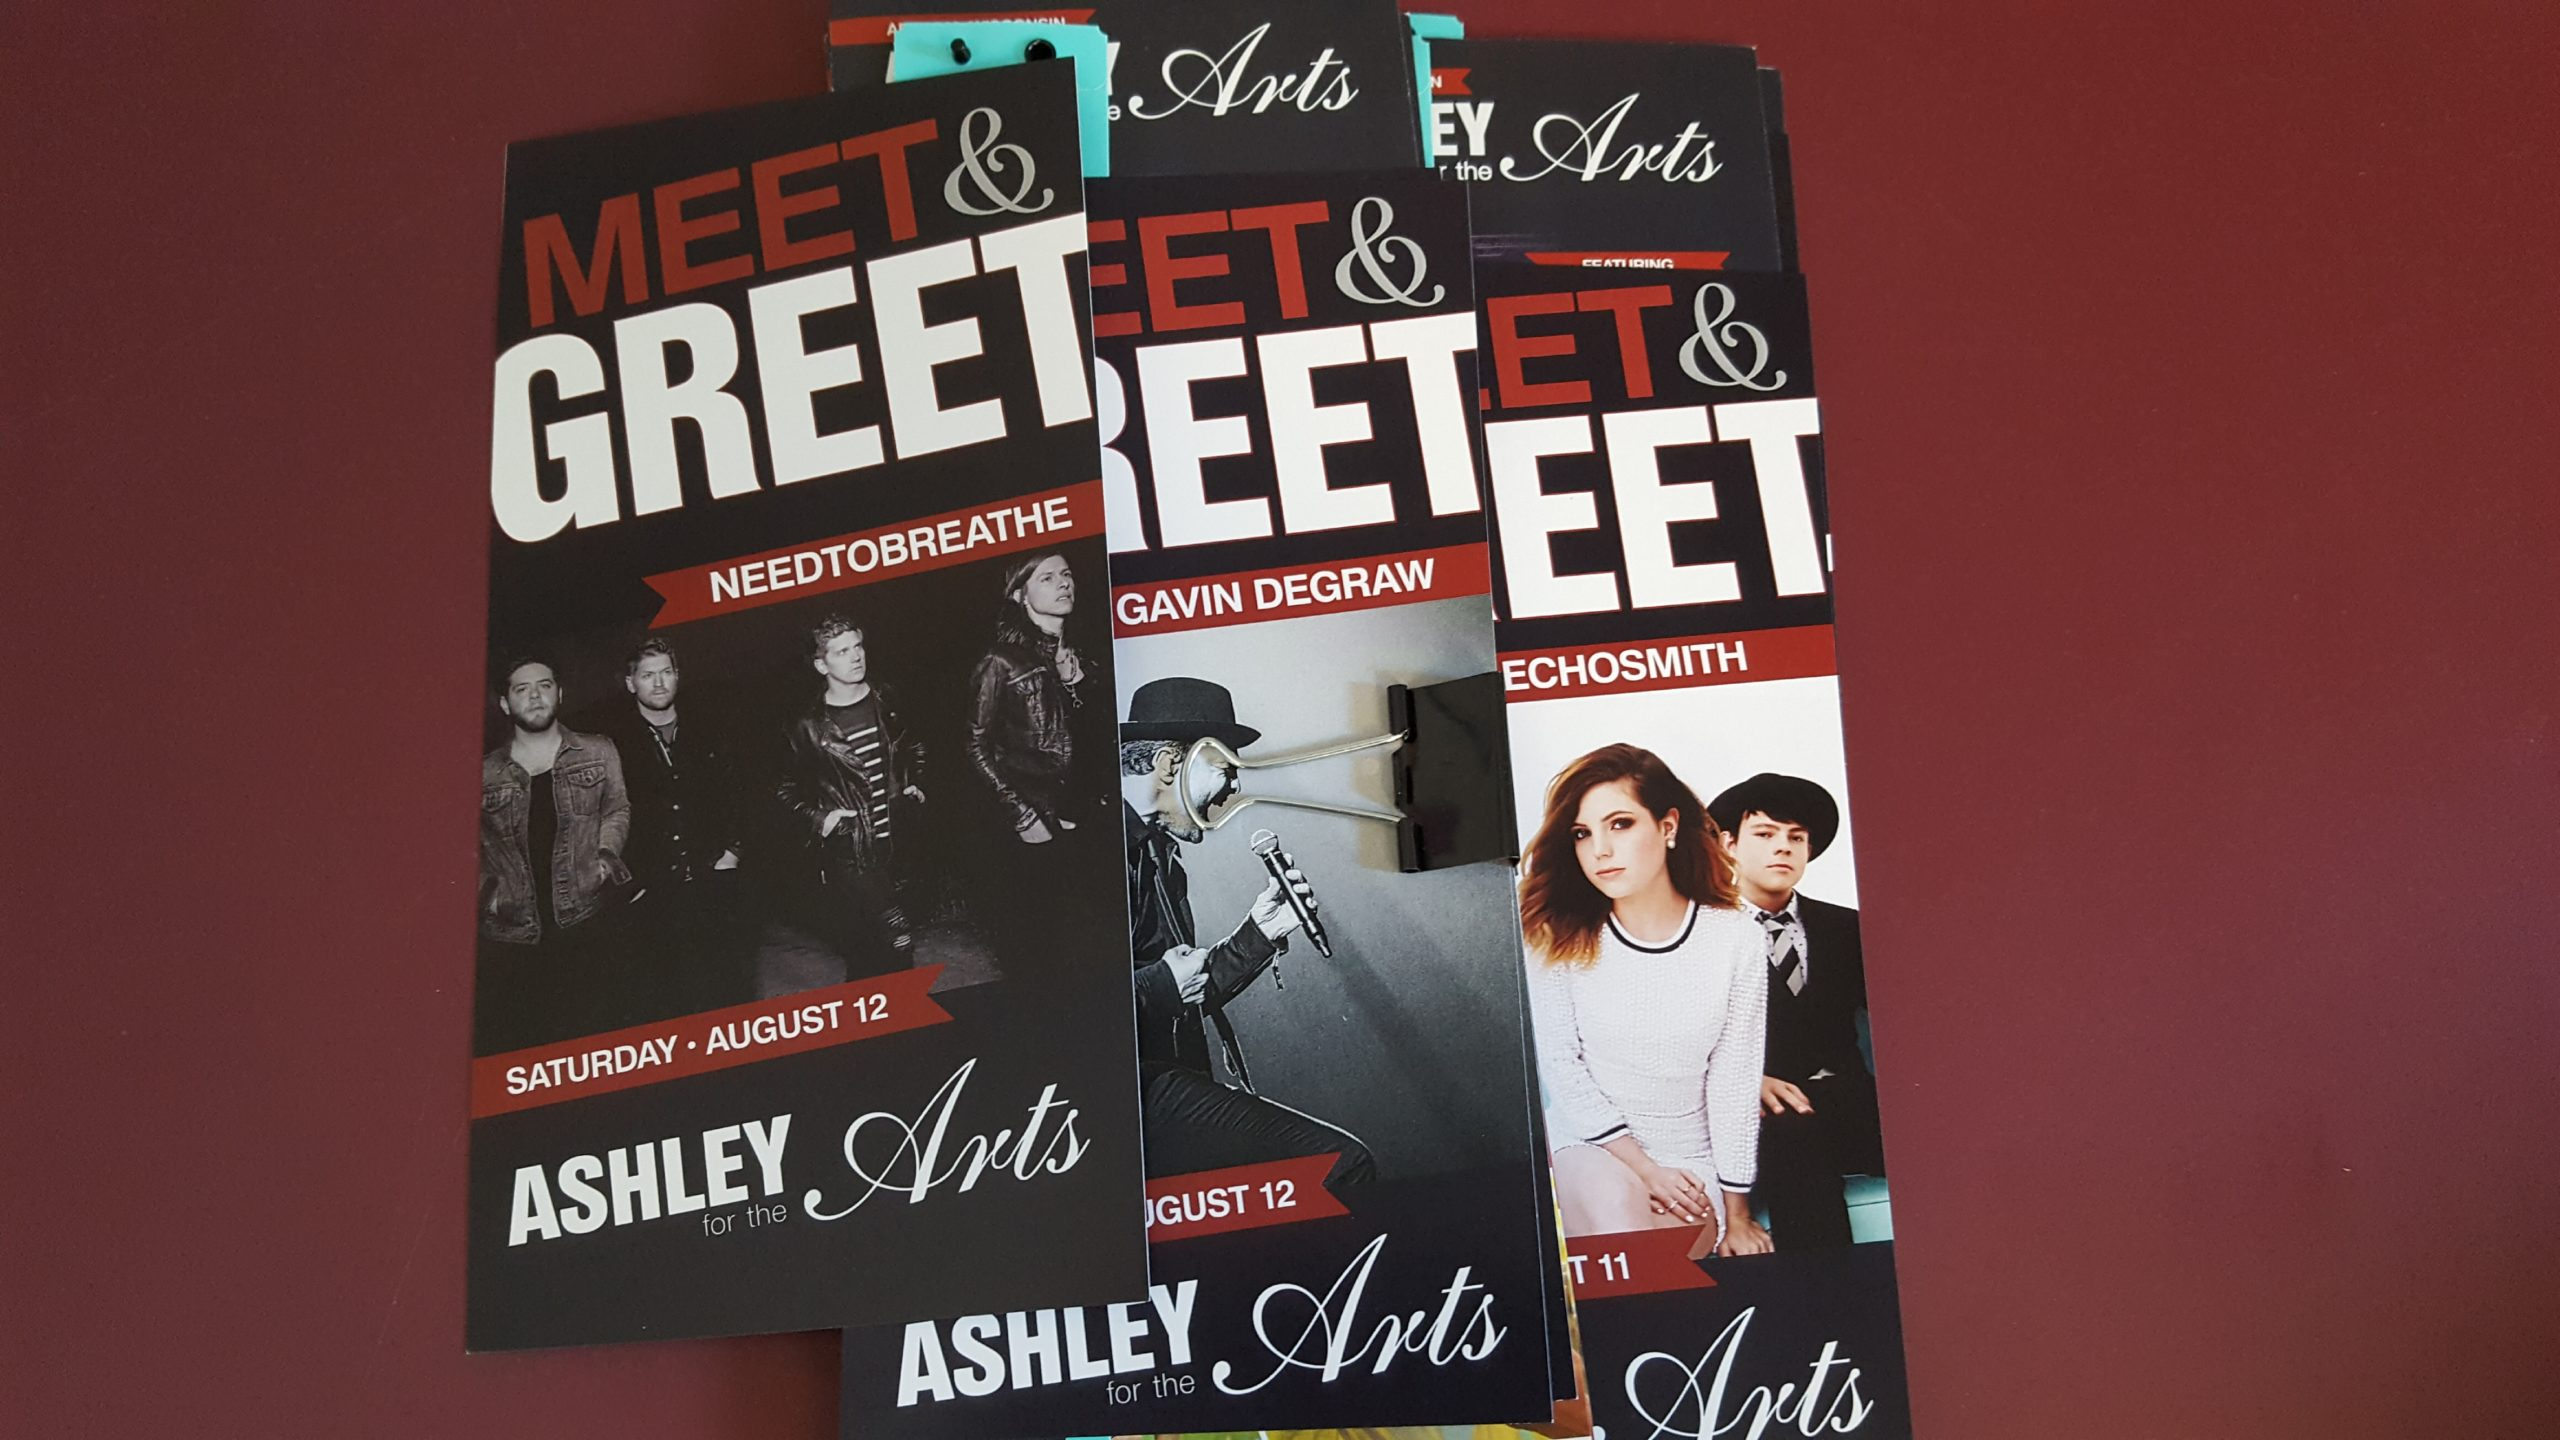 Win Meet & Greets With Echosmith!